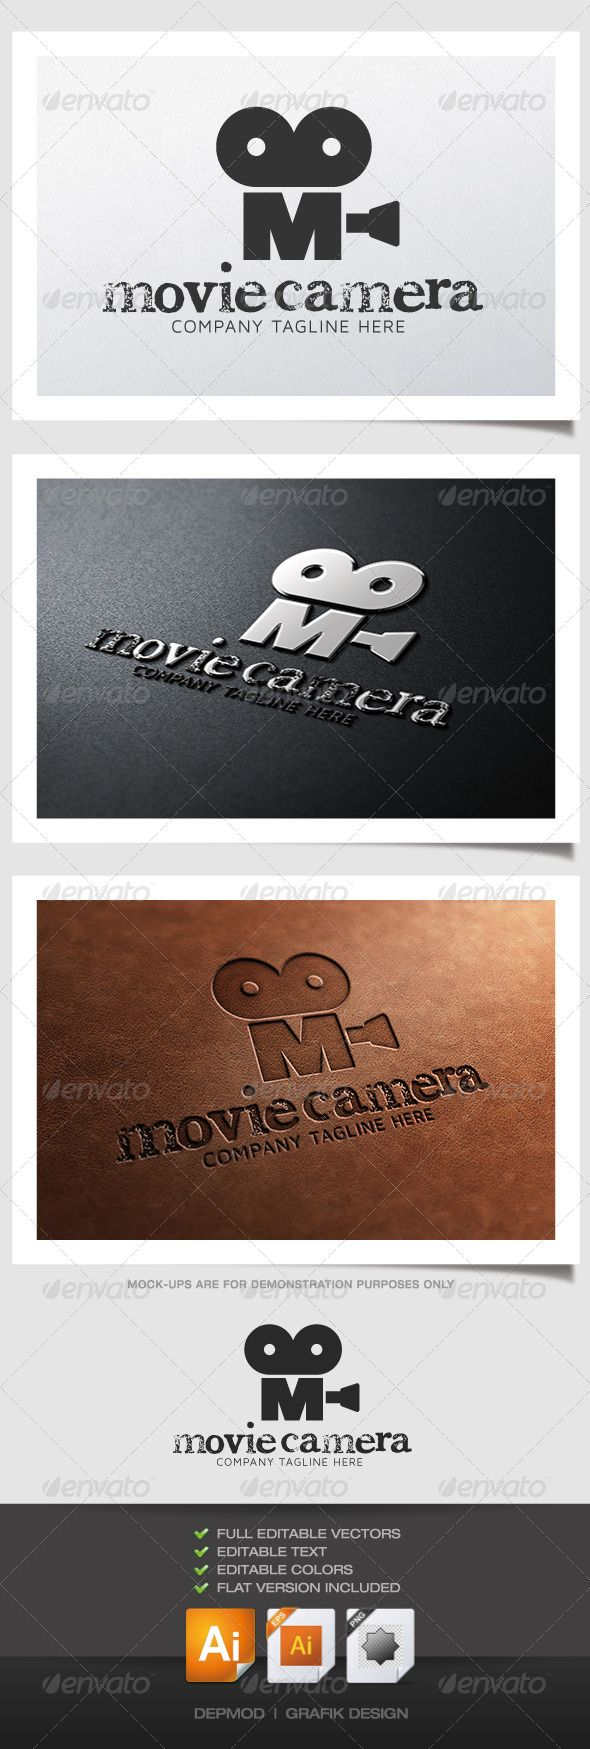 Movie Camera Logo #GraphicRiver Logo of an old movie camera in M shape. Can be used for many kind of project. Full vectors, this logo can be easily resize and colors can be changed to fit your colors project. Flat version for print also included. The font used is in a download file in the package. Font : .fontsquirrel /fonts/maven-pro .fontpalace /font-details/CheltPress+Trial/ Files provided : .ai (CS6 and CS), .eps, .jpg, .png (transparent) Created: 6June13 GraphicsFilesIncluded…